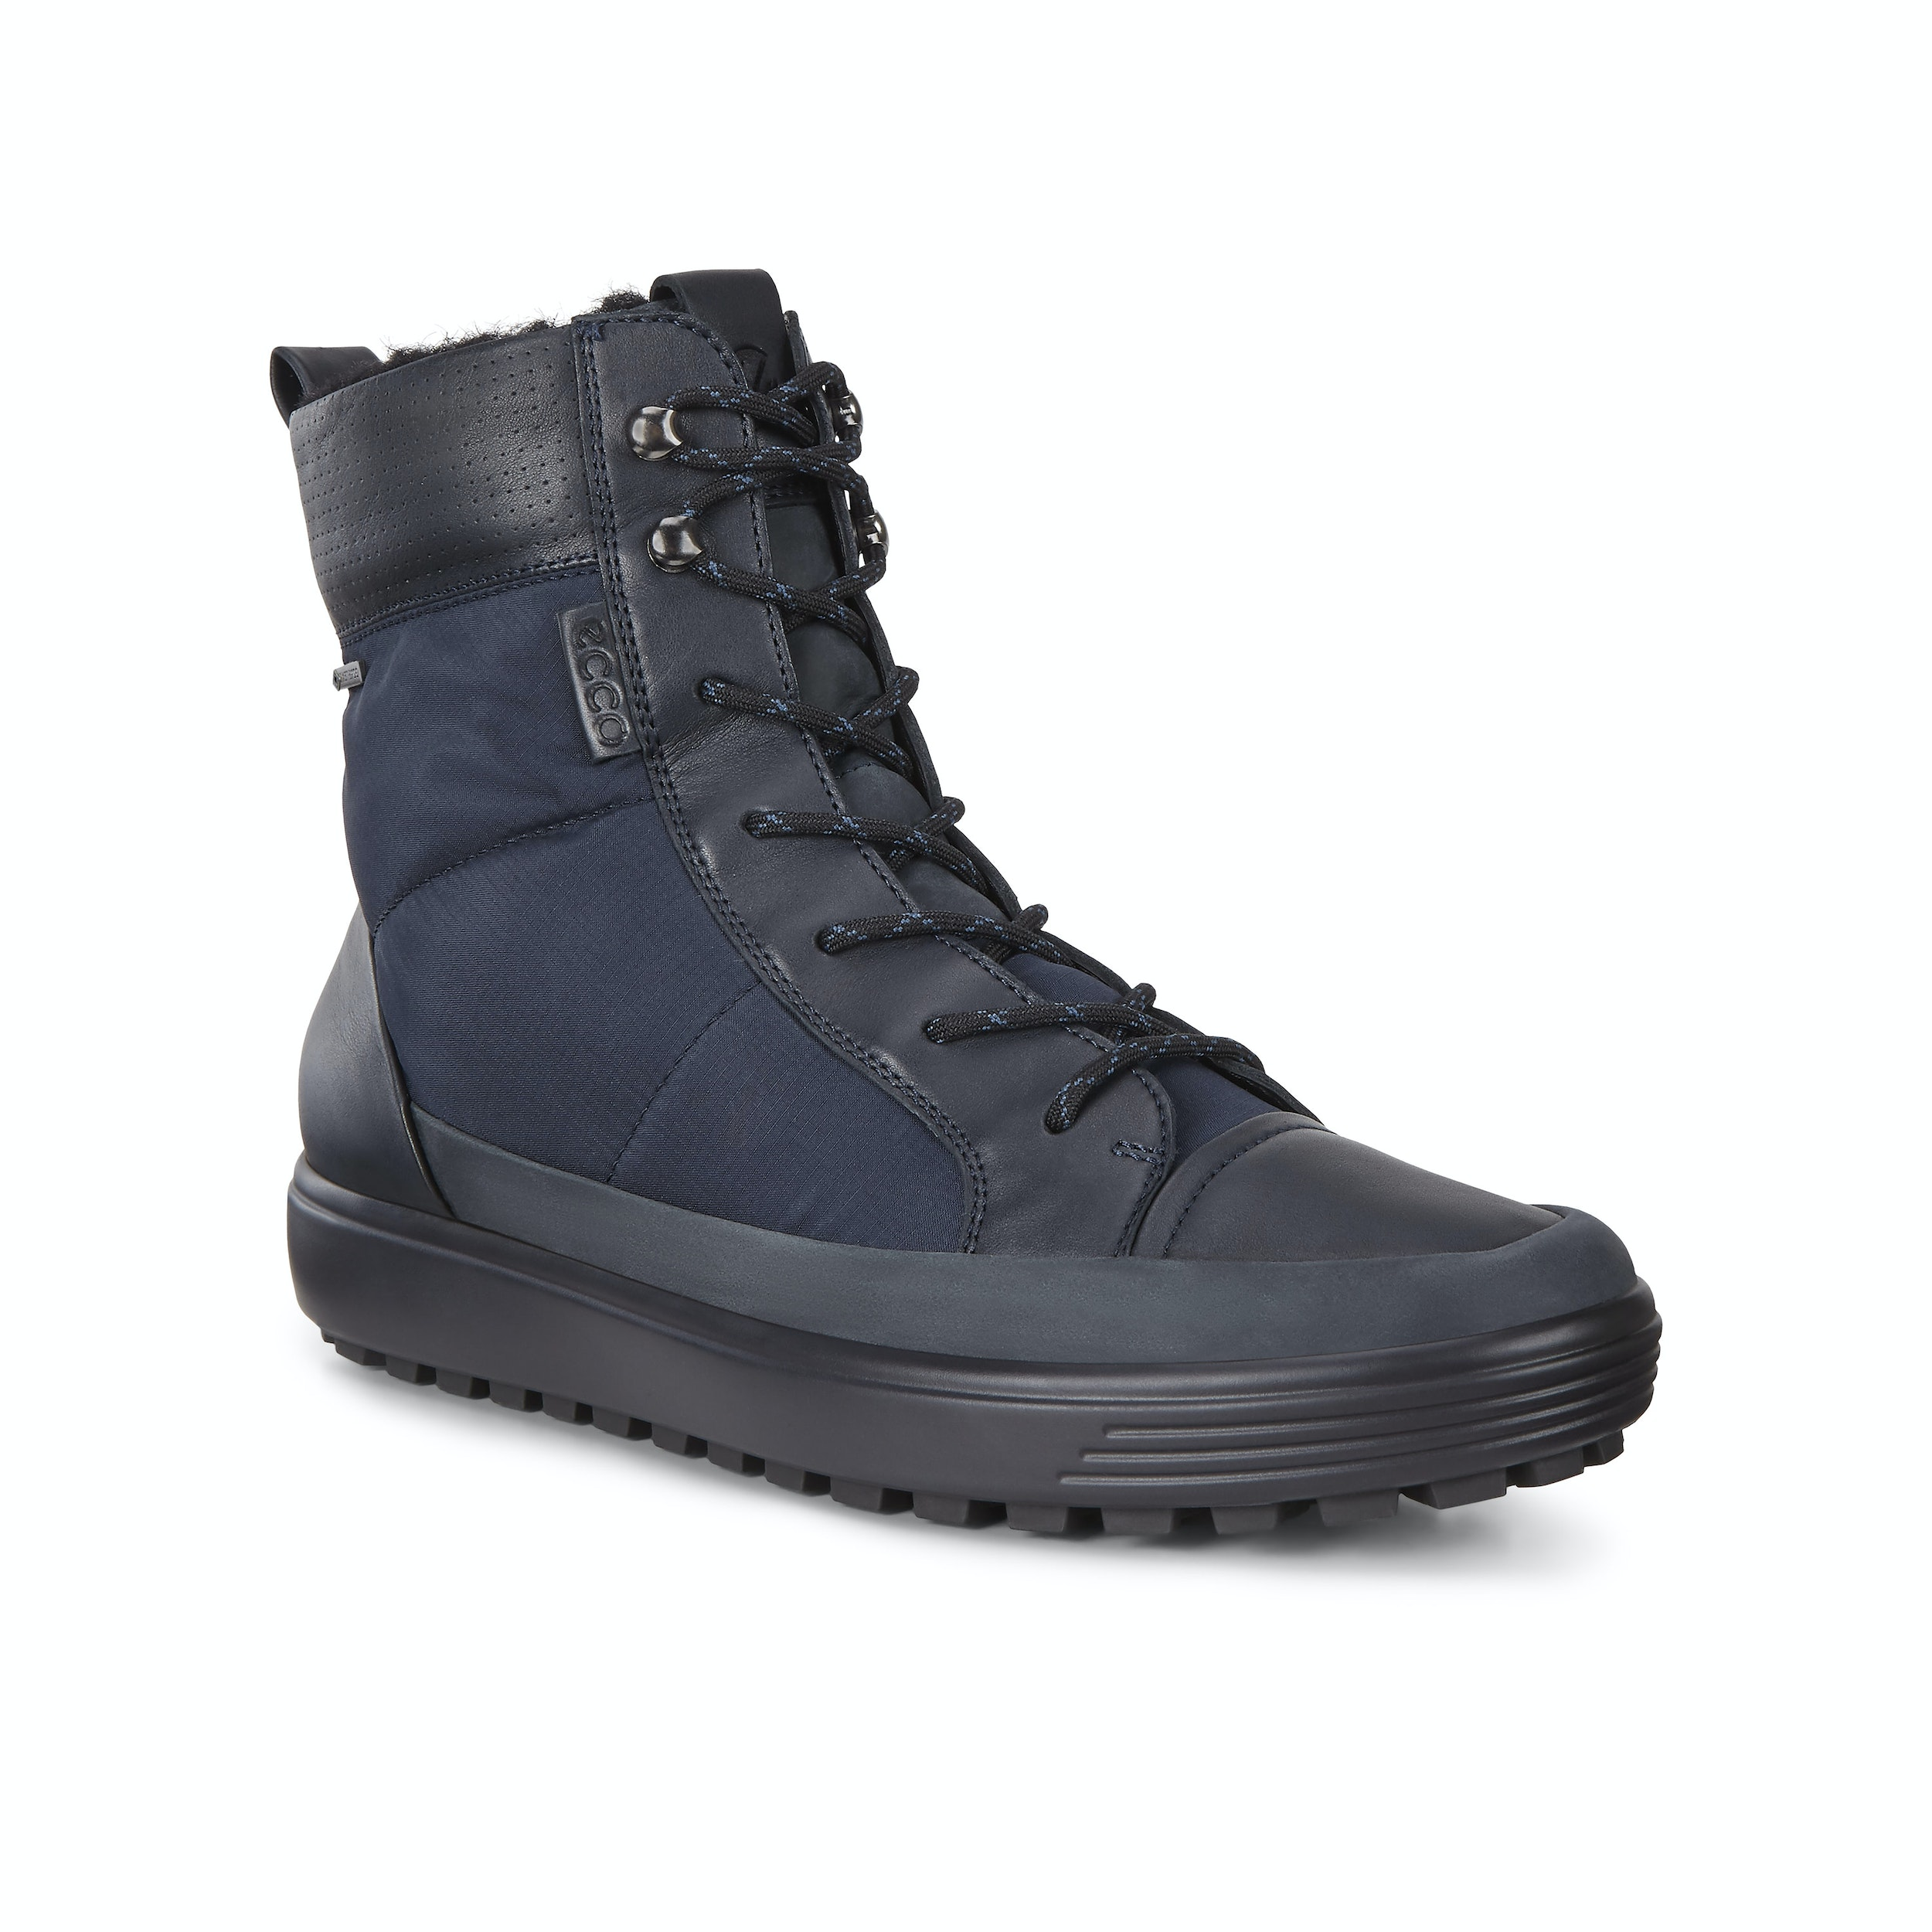 205601e03f Women's Ecco Soft 7 Tred Lace GTX - Rugged lace up boot with Gore ...